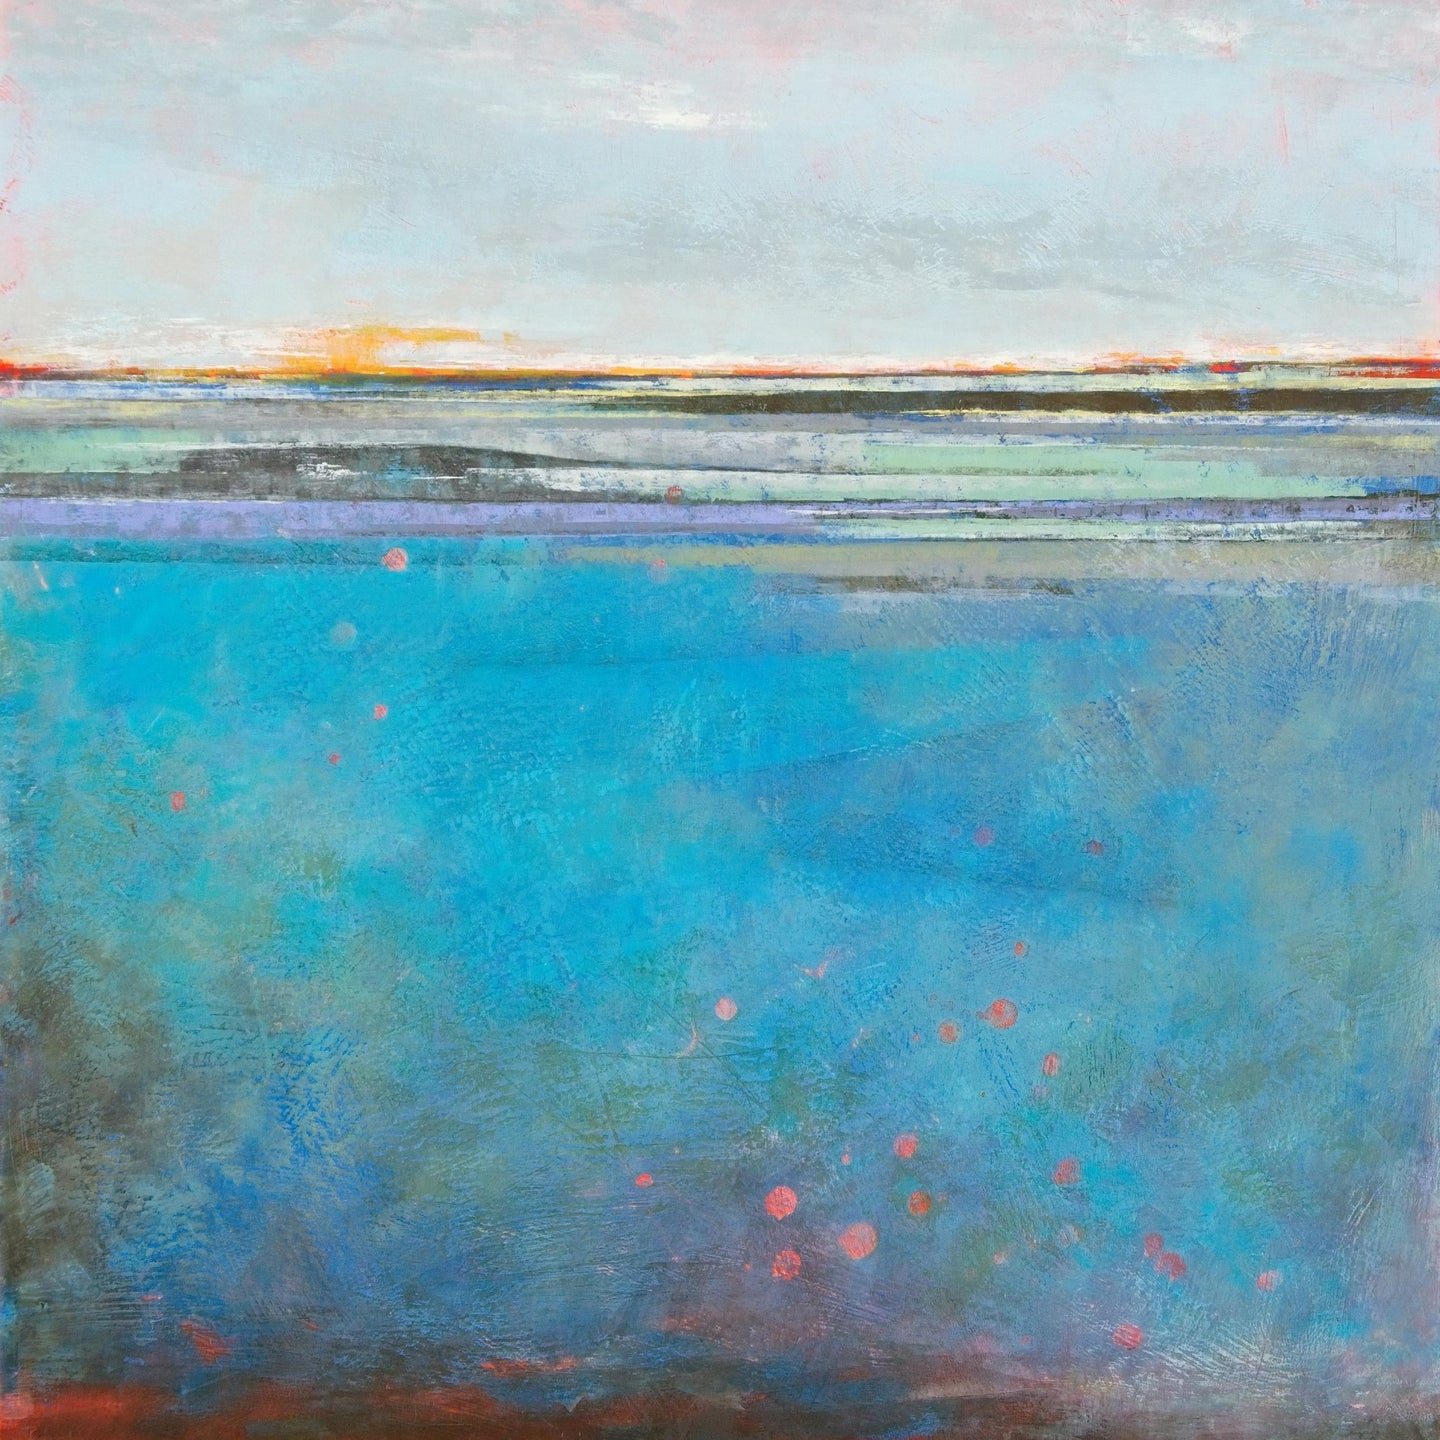 Turquoise abstract seascape painting